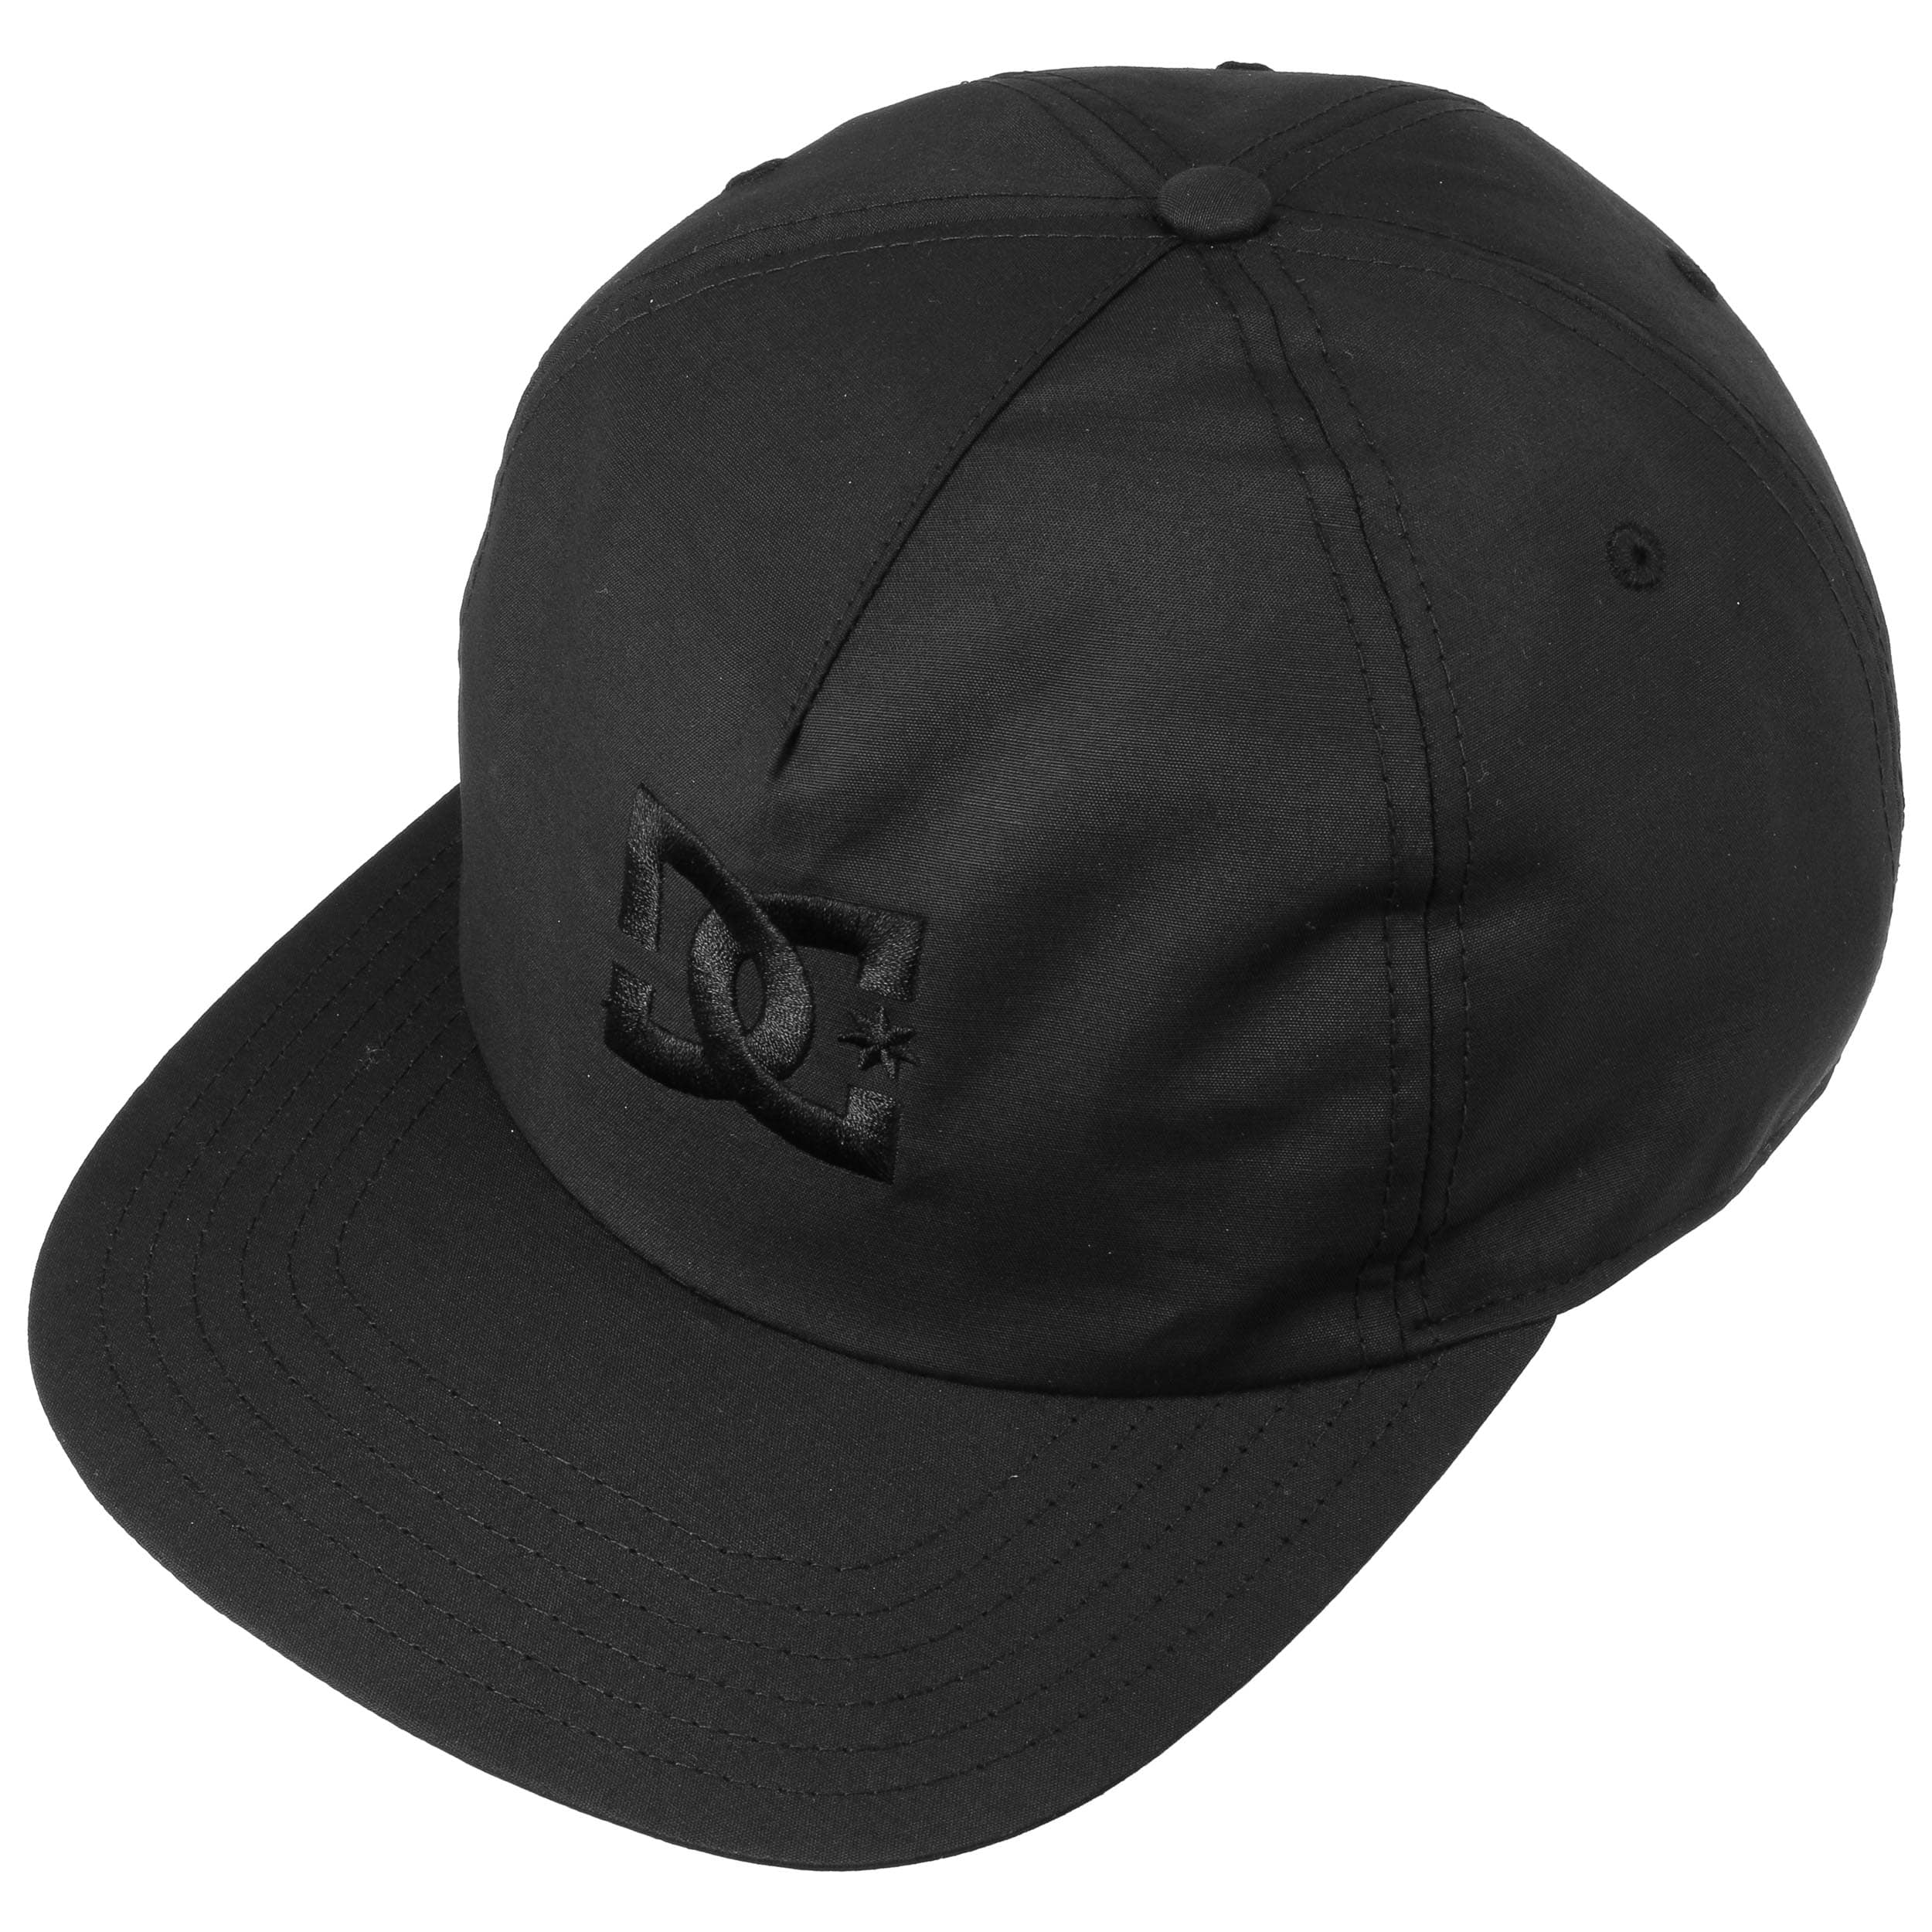 5bce6d0b0a9 ... Floora Flat Brim Cap by DC Shoes Co - black 1 ...